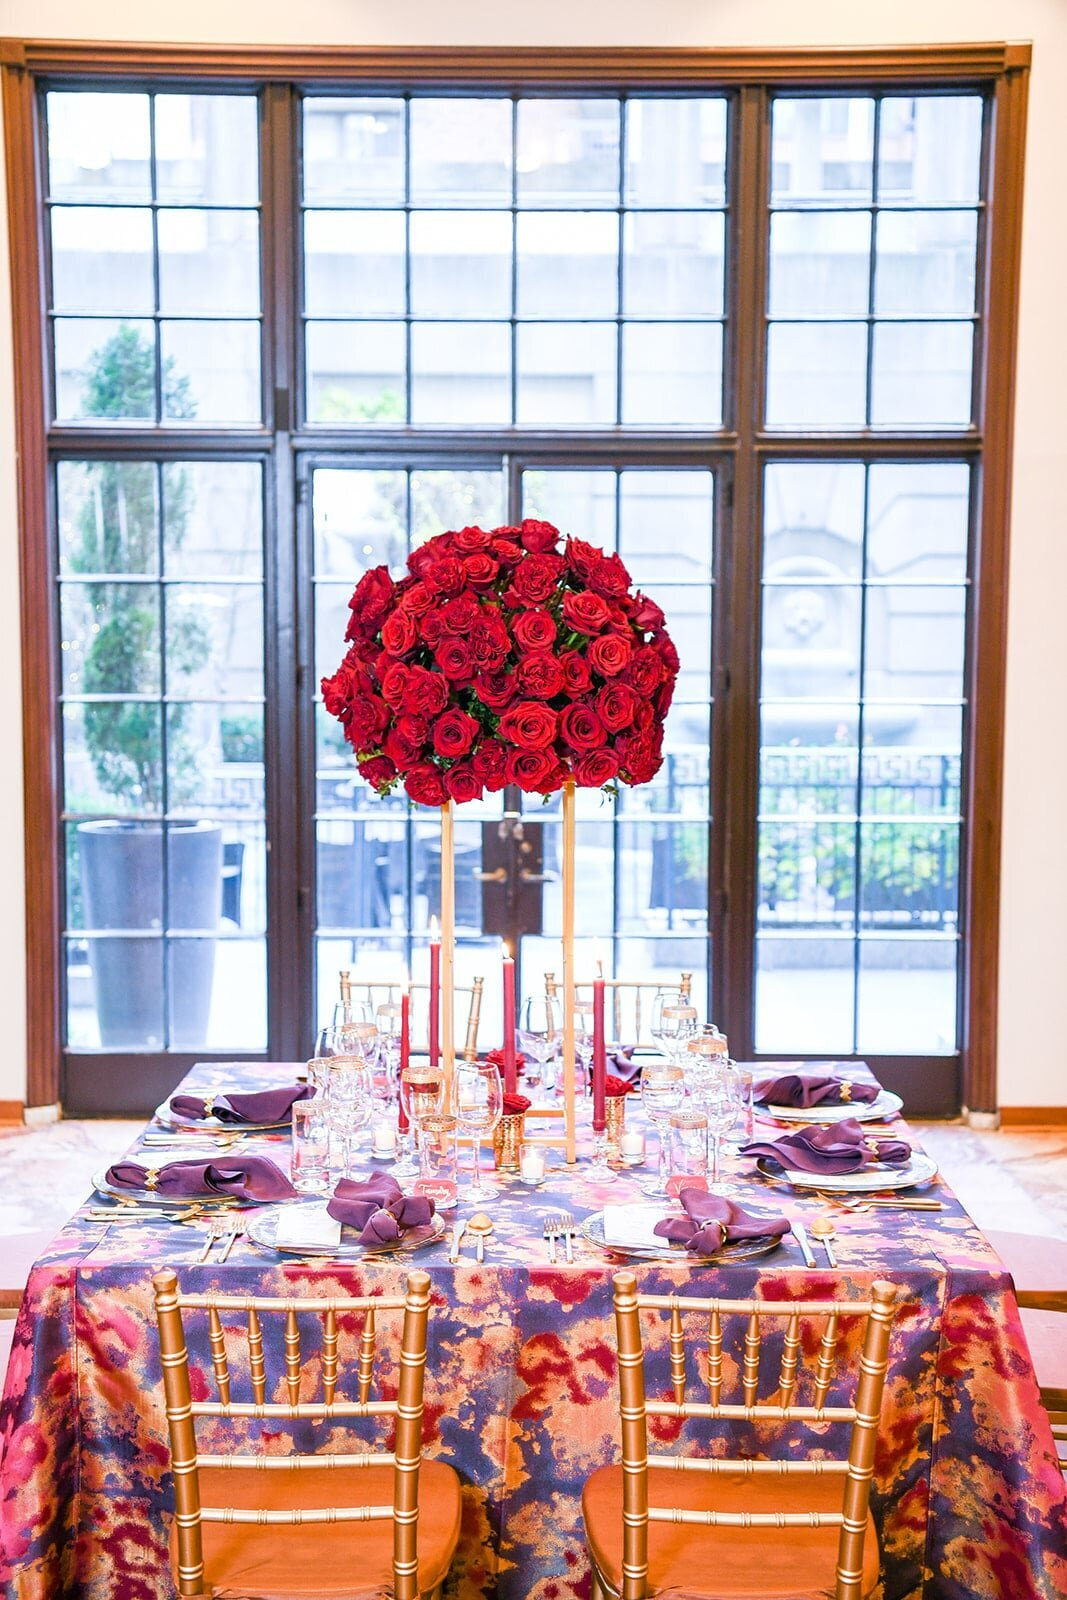 red-wedding-tall-red-roses-centerpiece-receptions-klassy-kreations